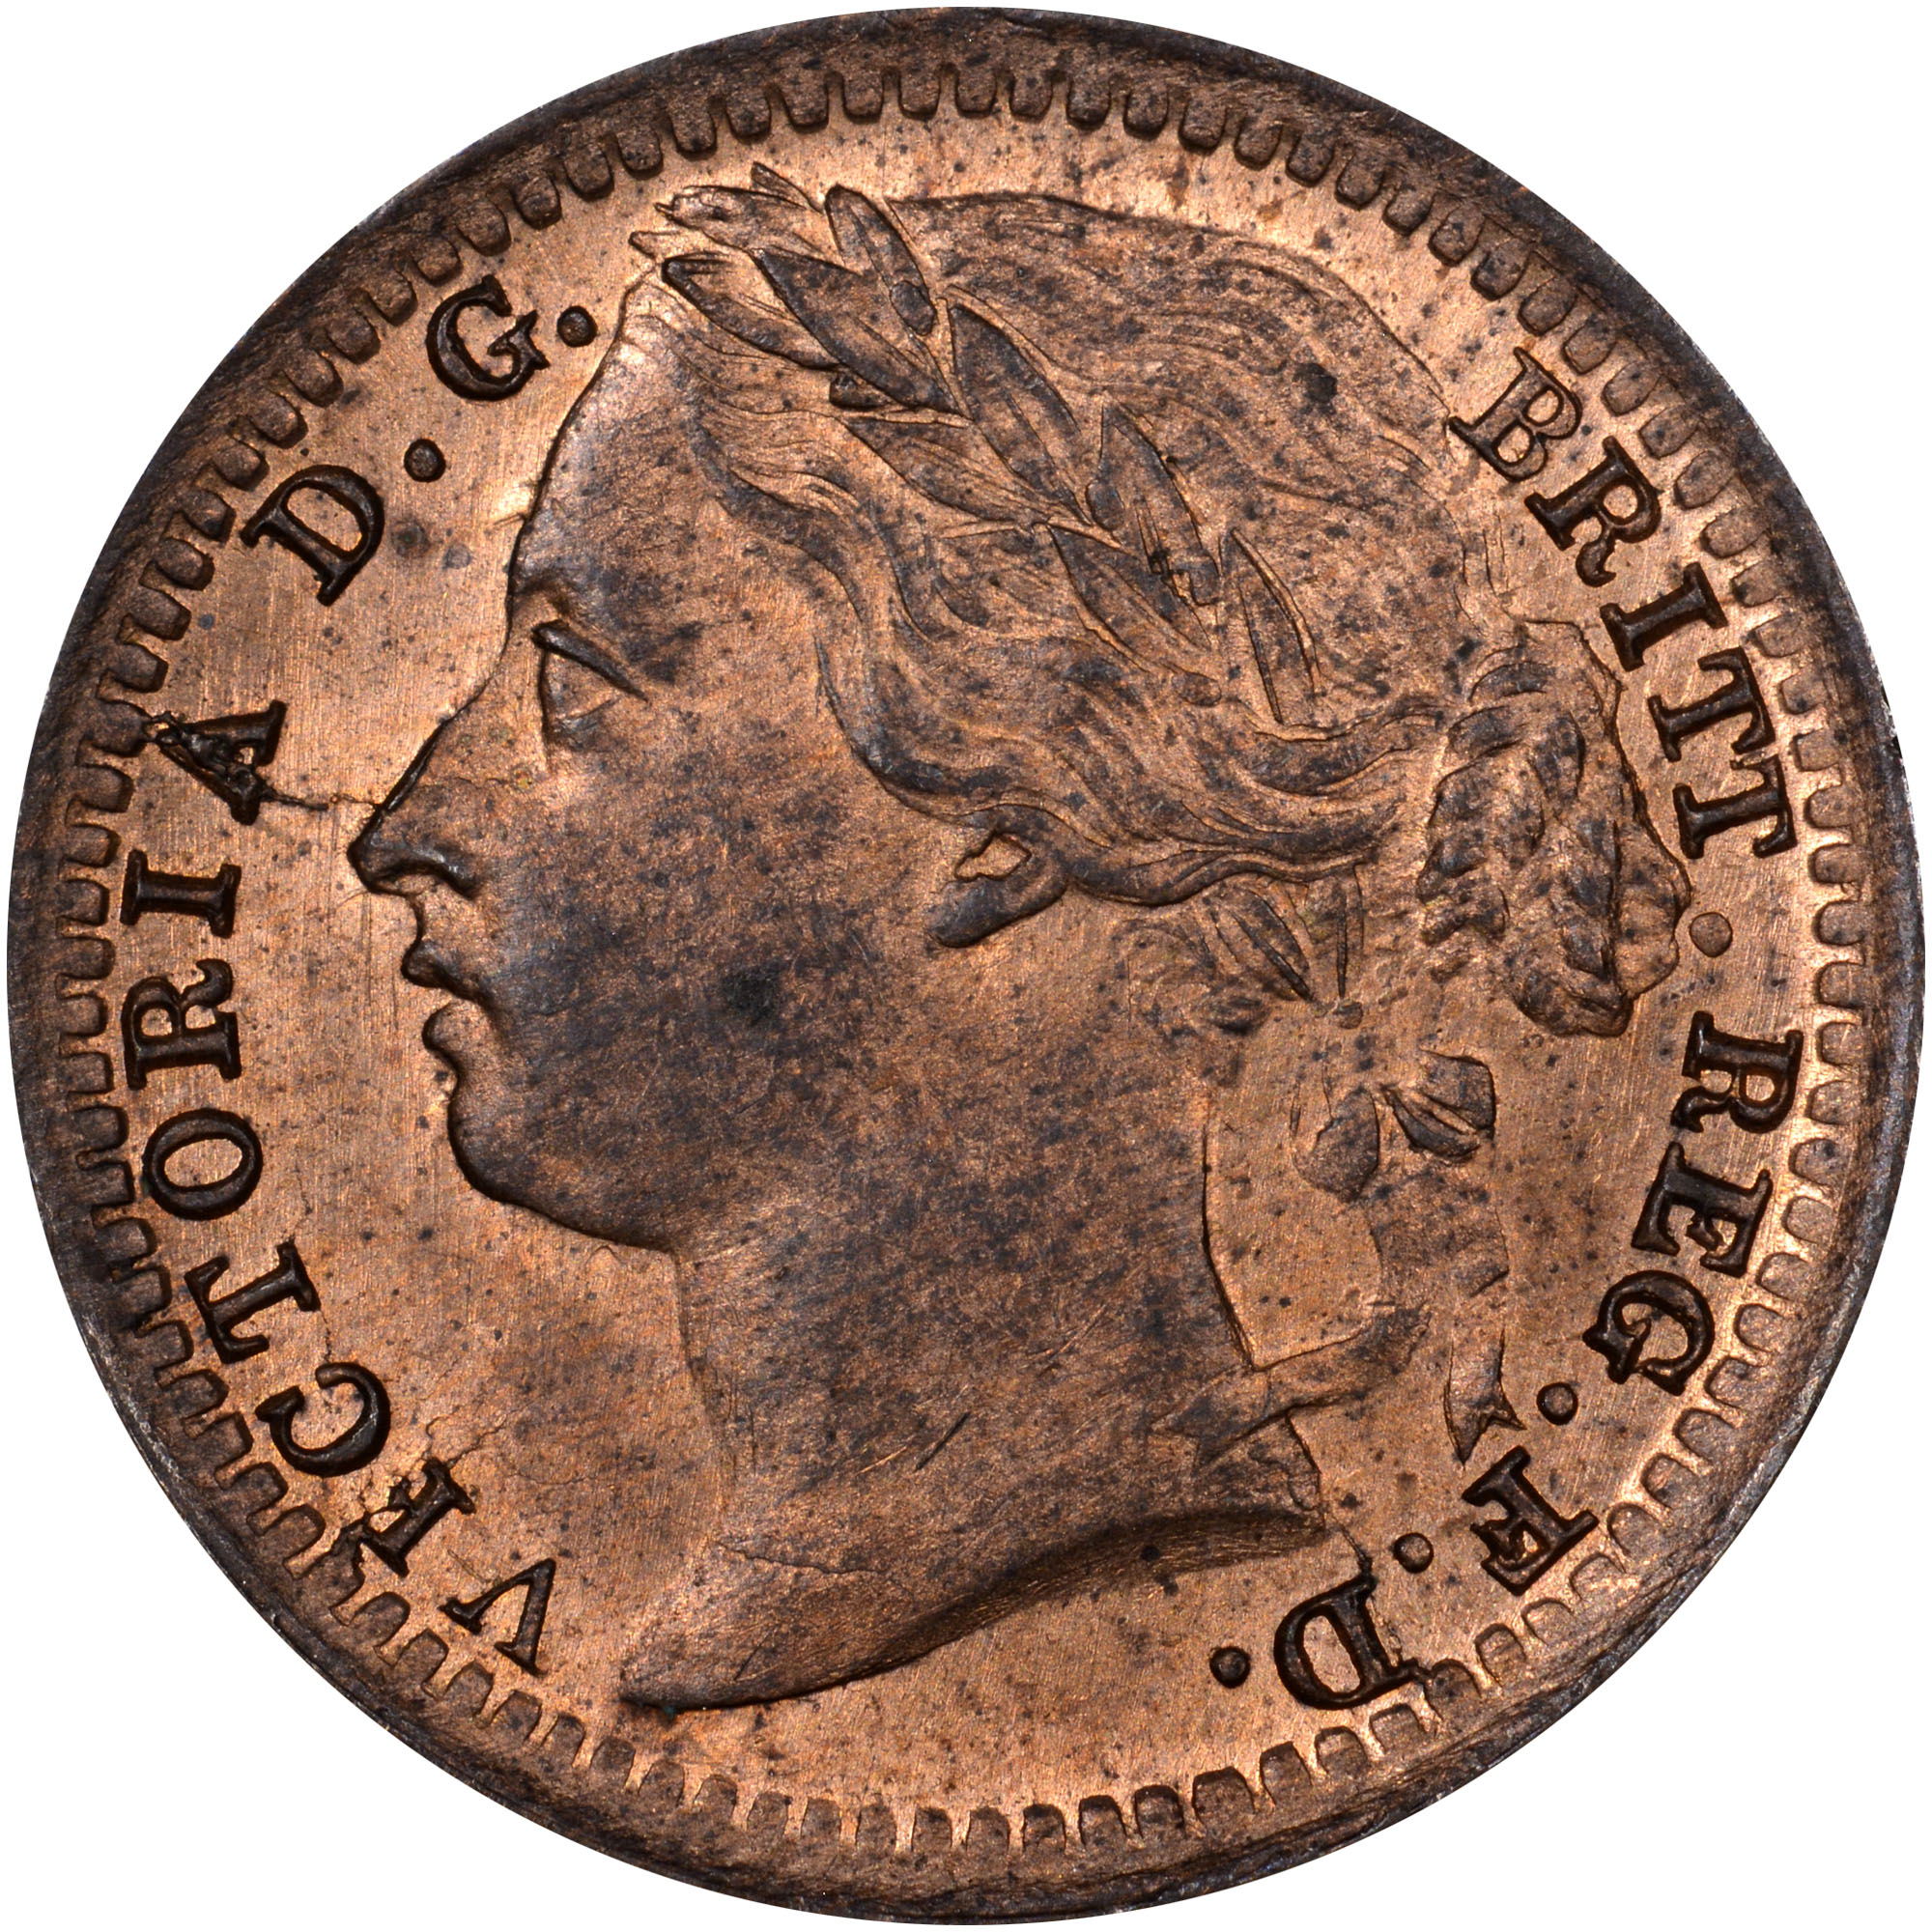 1866-1885 Great Britain 1/3 Farthing obverse